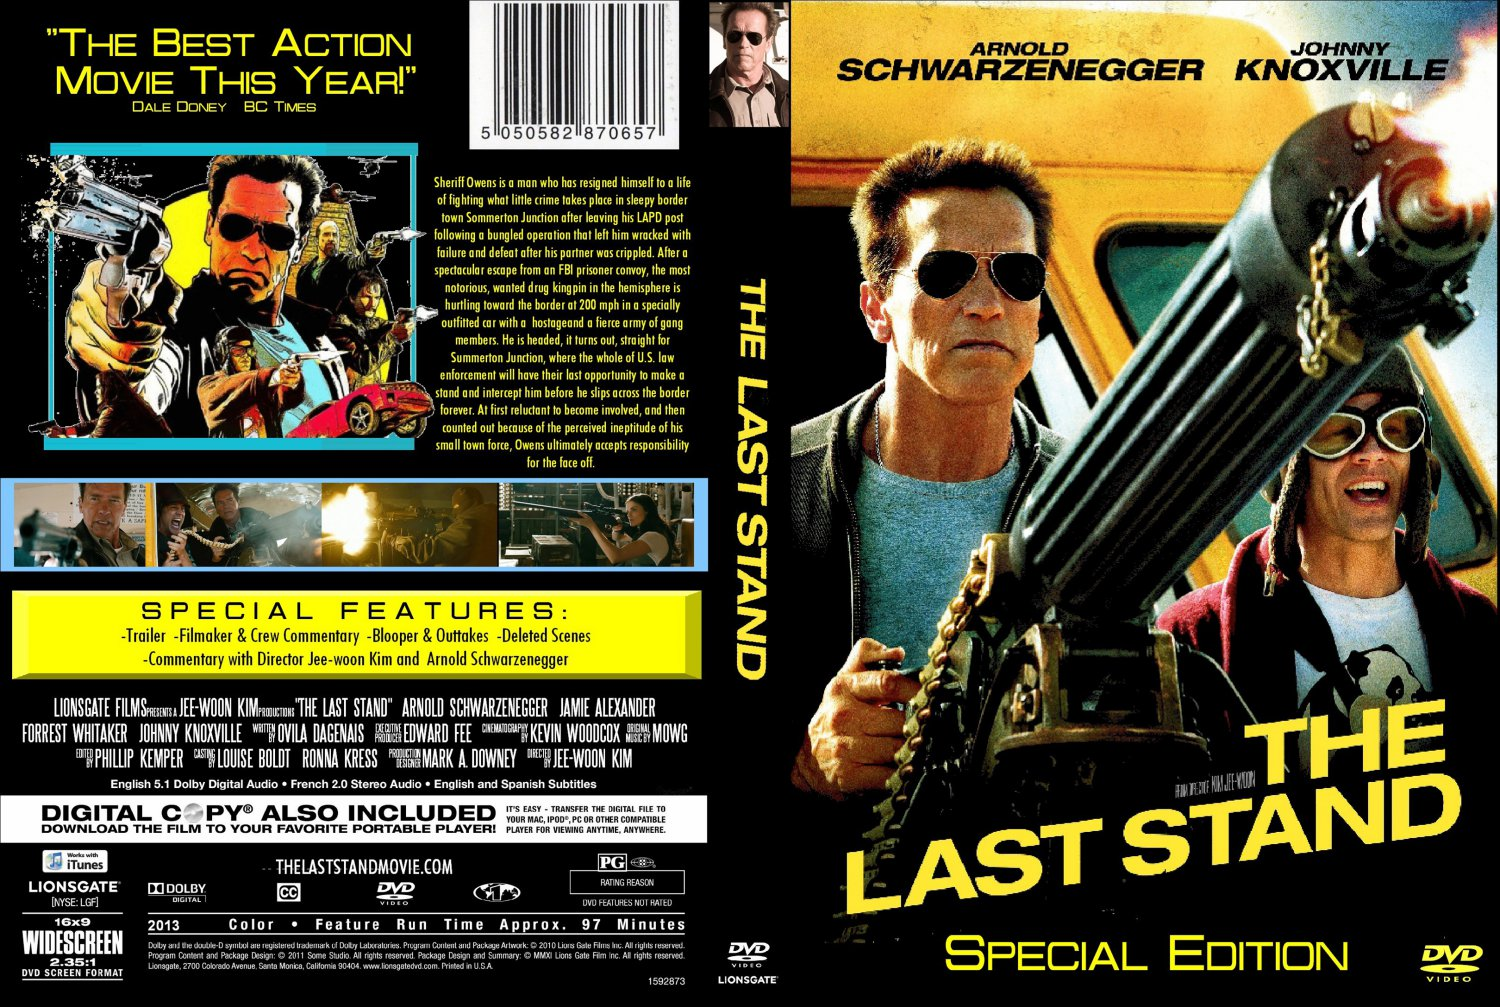 the last stand movie dvd custom covers the last stand